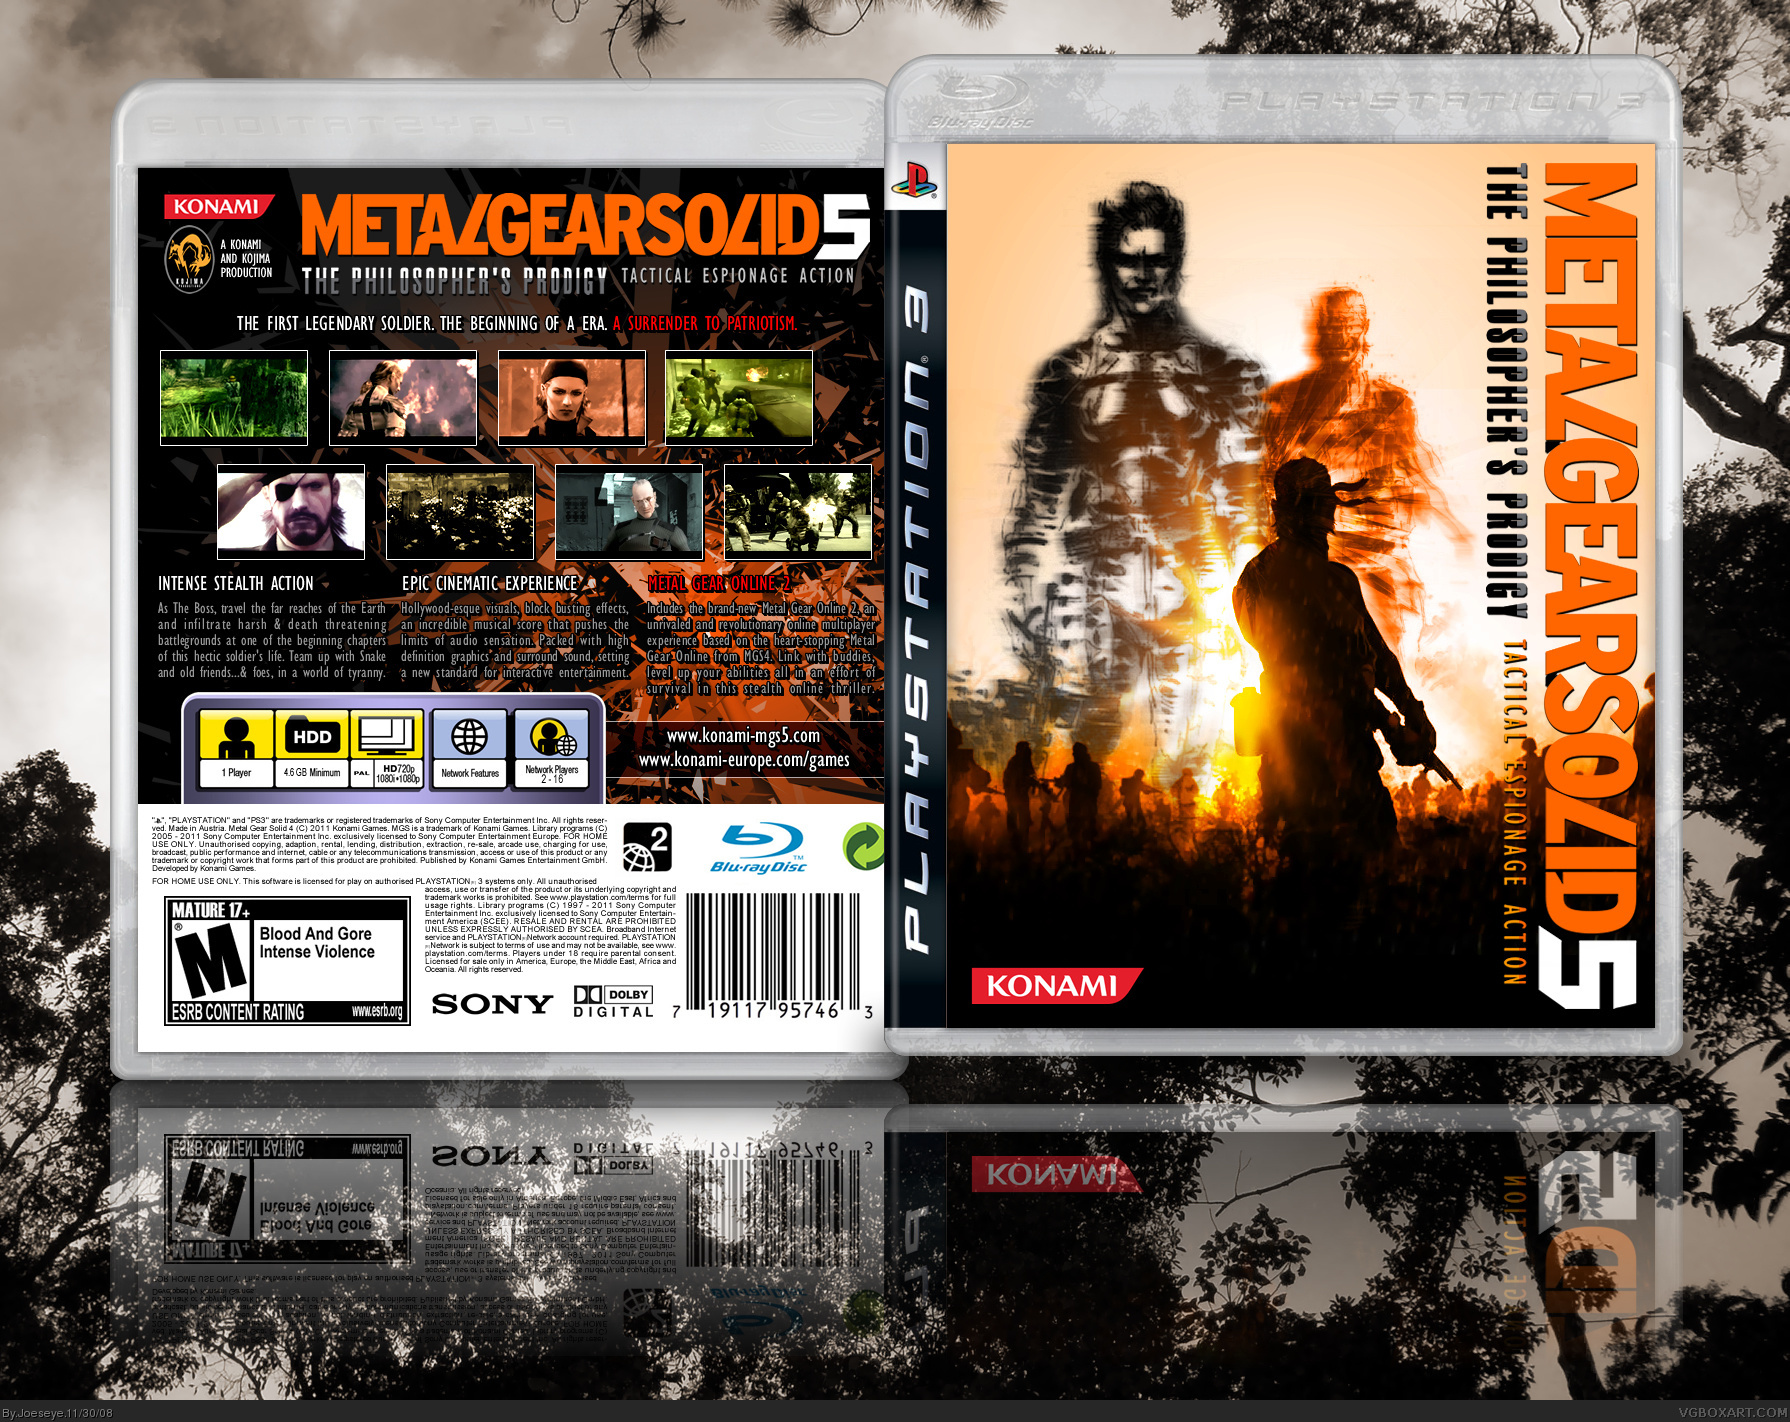 Metal Gear Solid 5 - The Philosopher's Prodigy PlayStation 3 Box Art